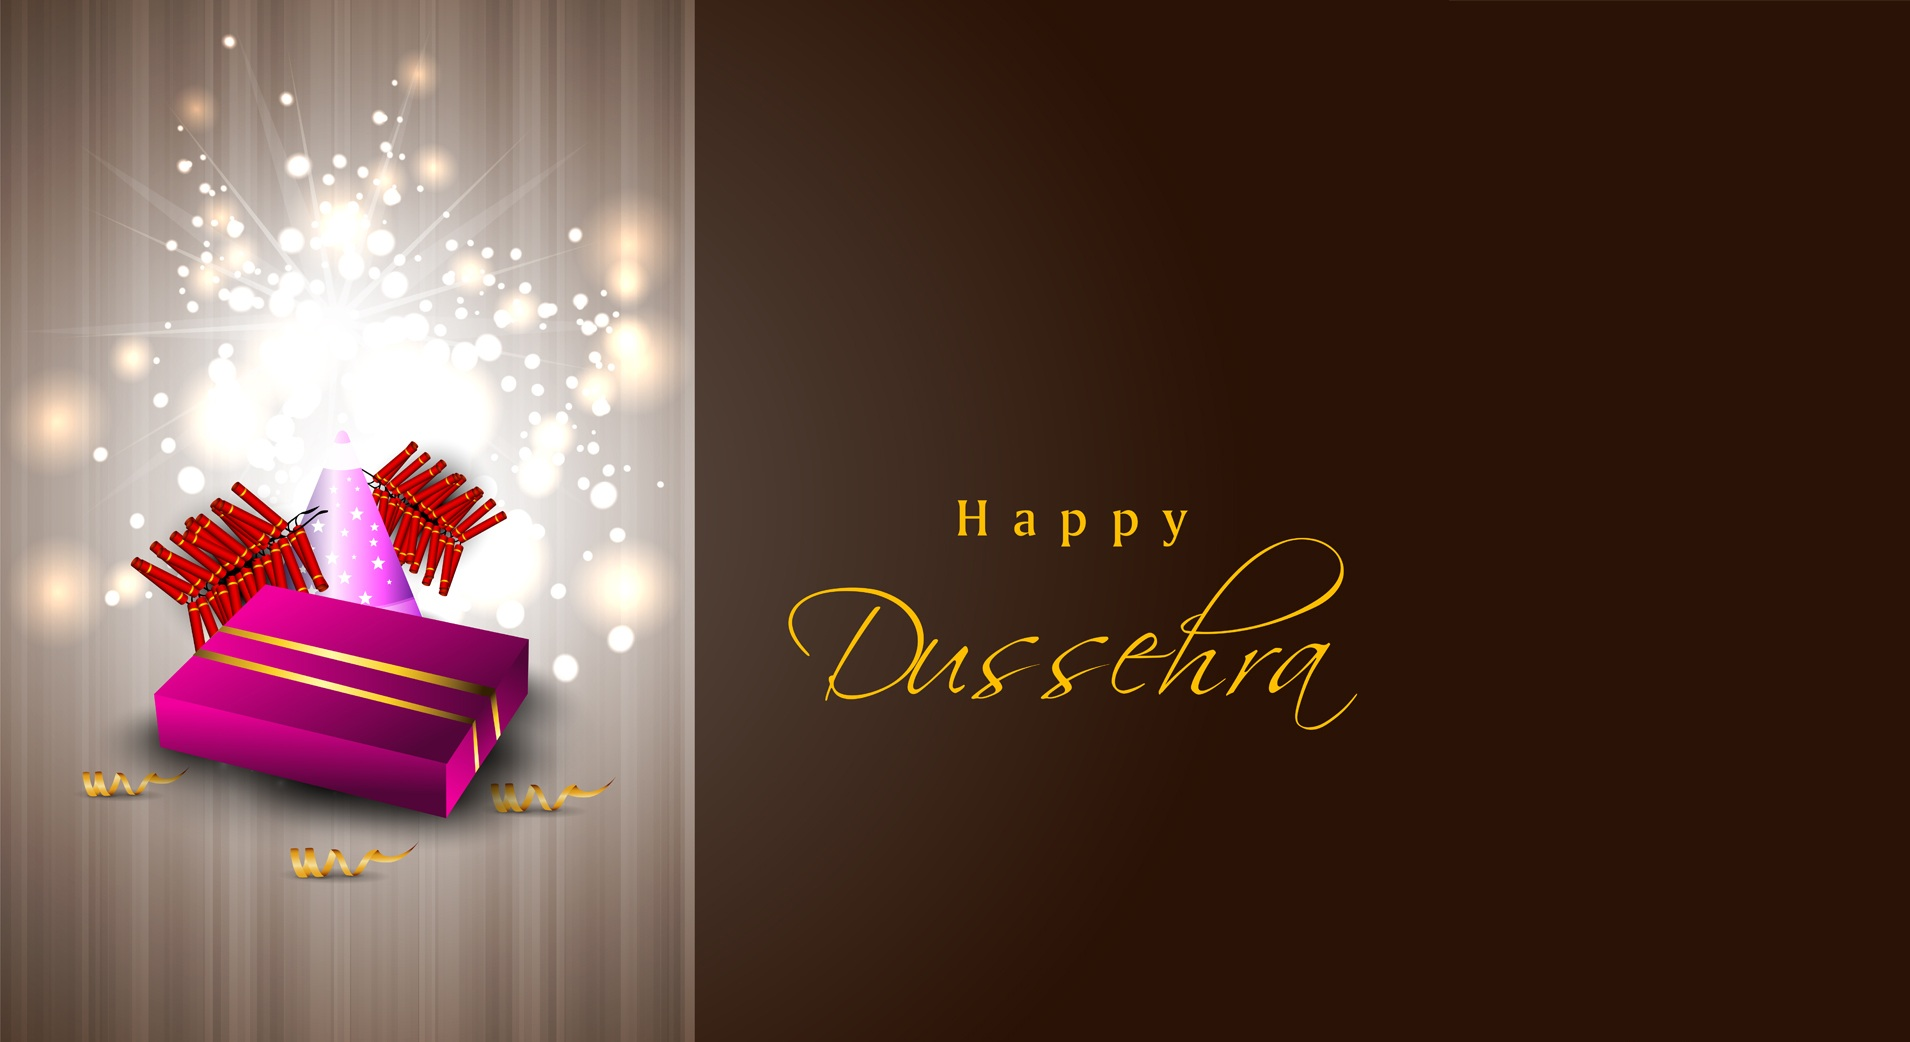 HAPPY DUSSEHRA 2016 HD IMAGES